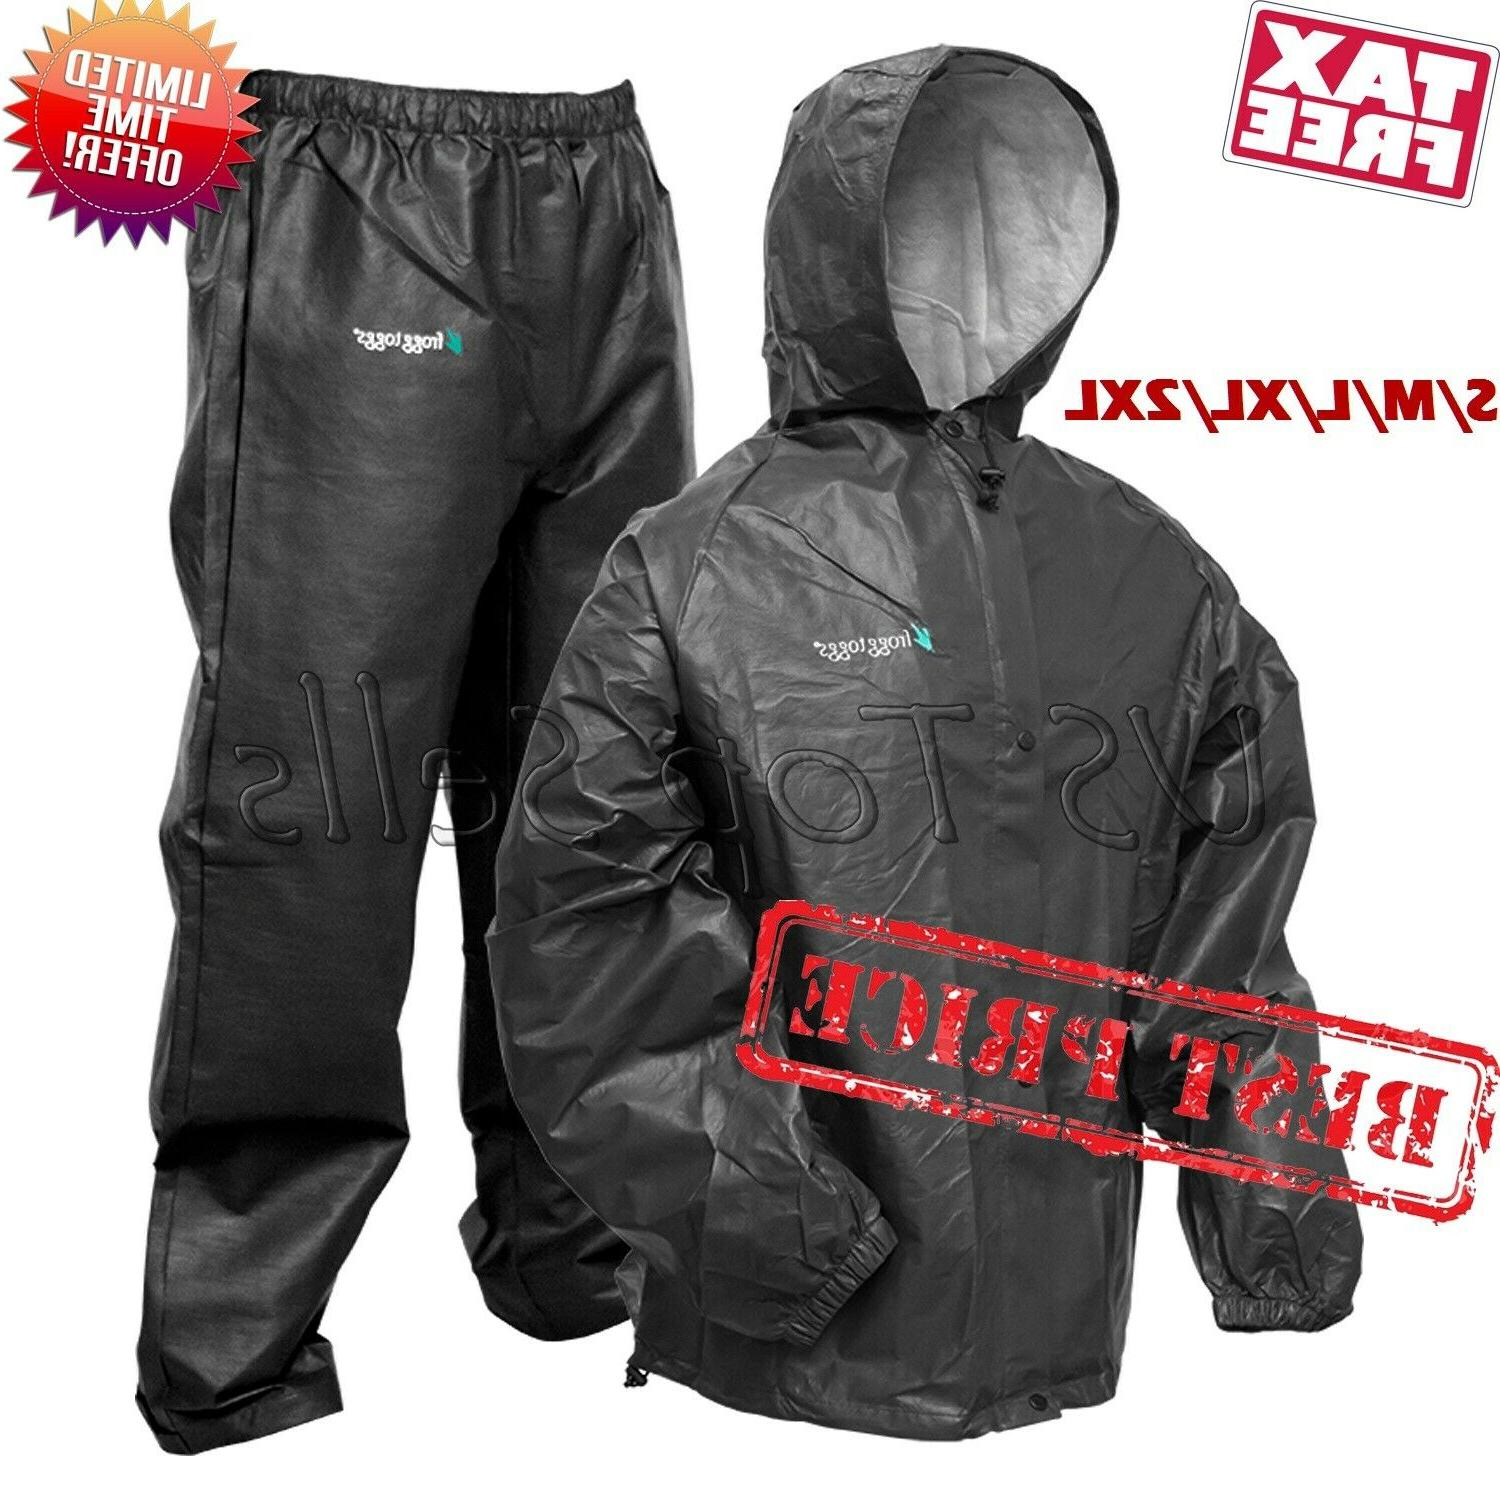 rain suit zippered jacket and pants